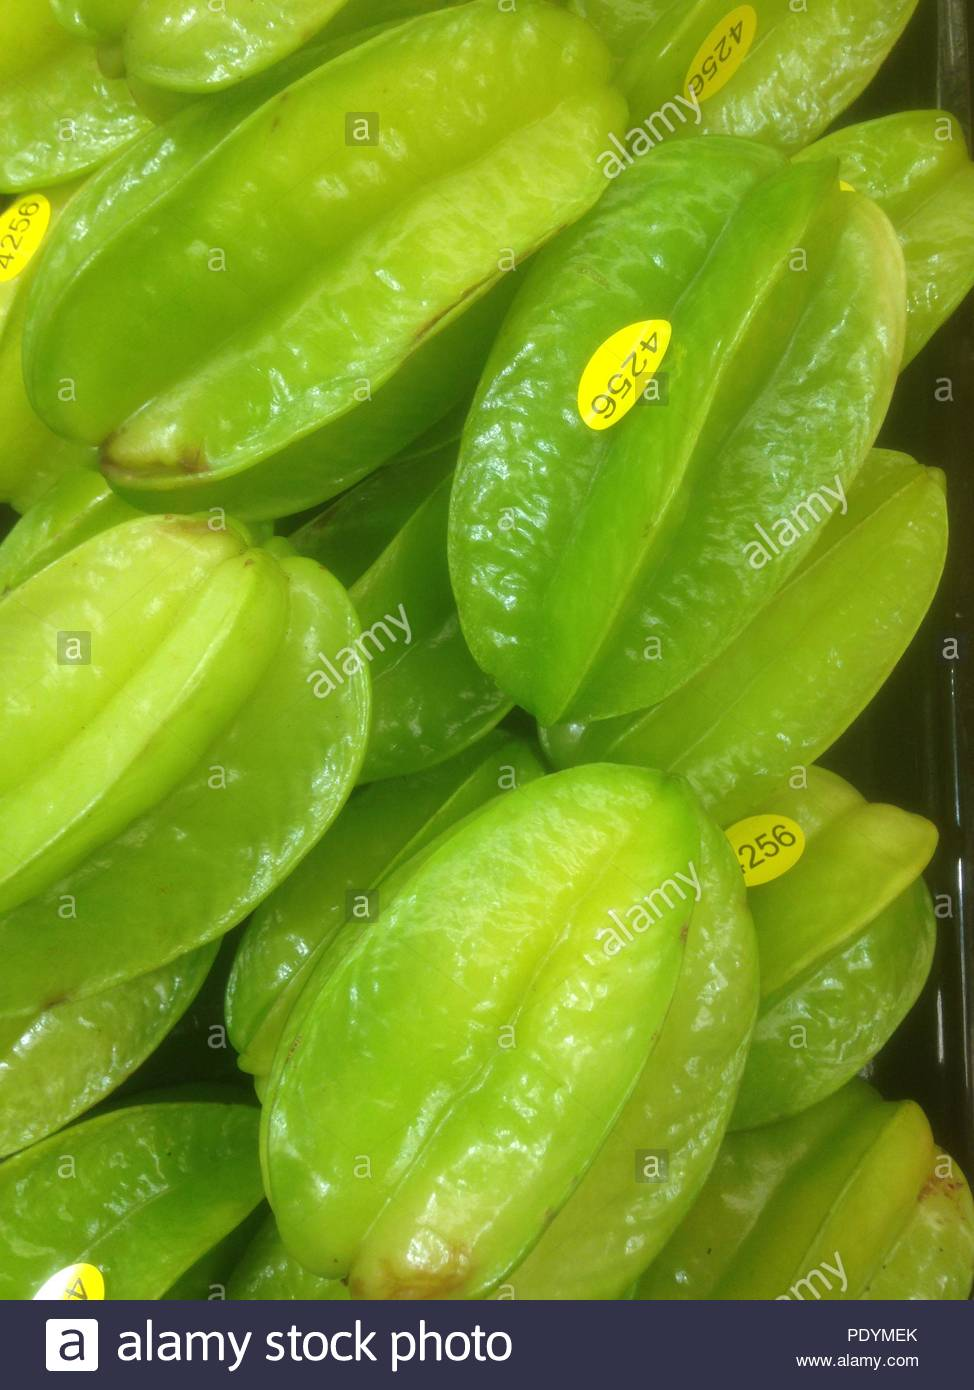 Starfruit (Carambola) for sale at a small market. - Stock Image